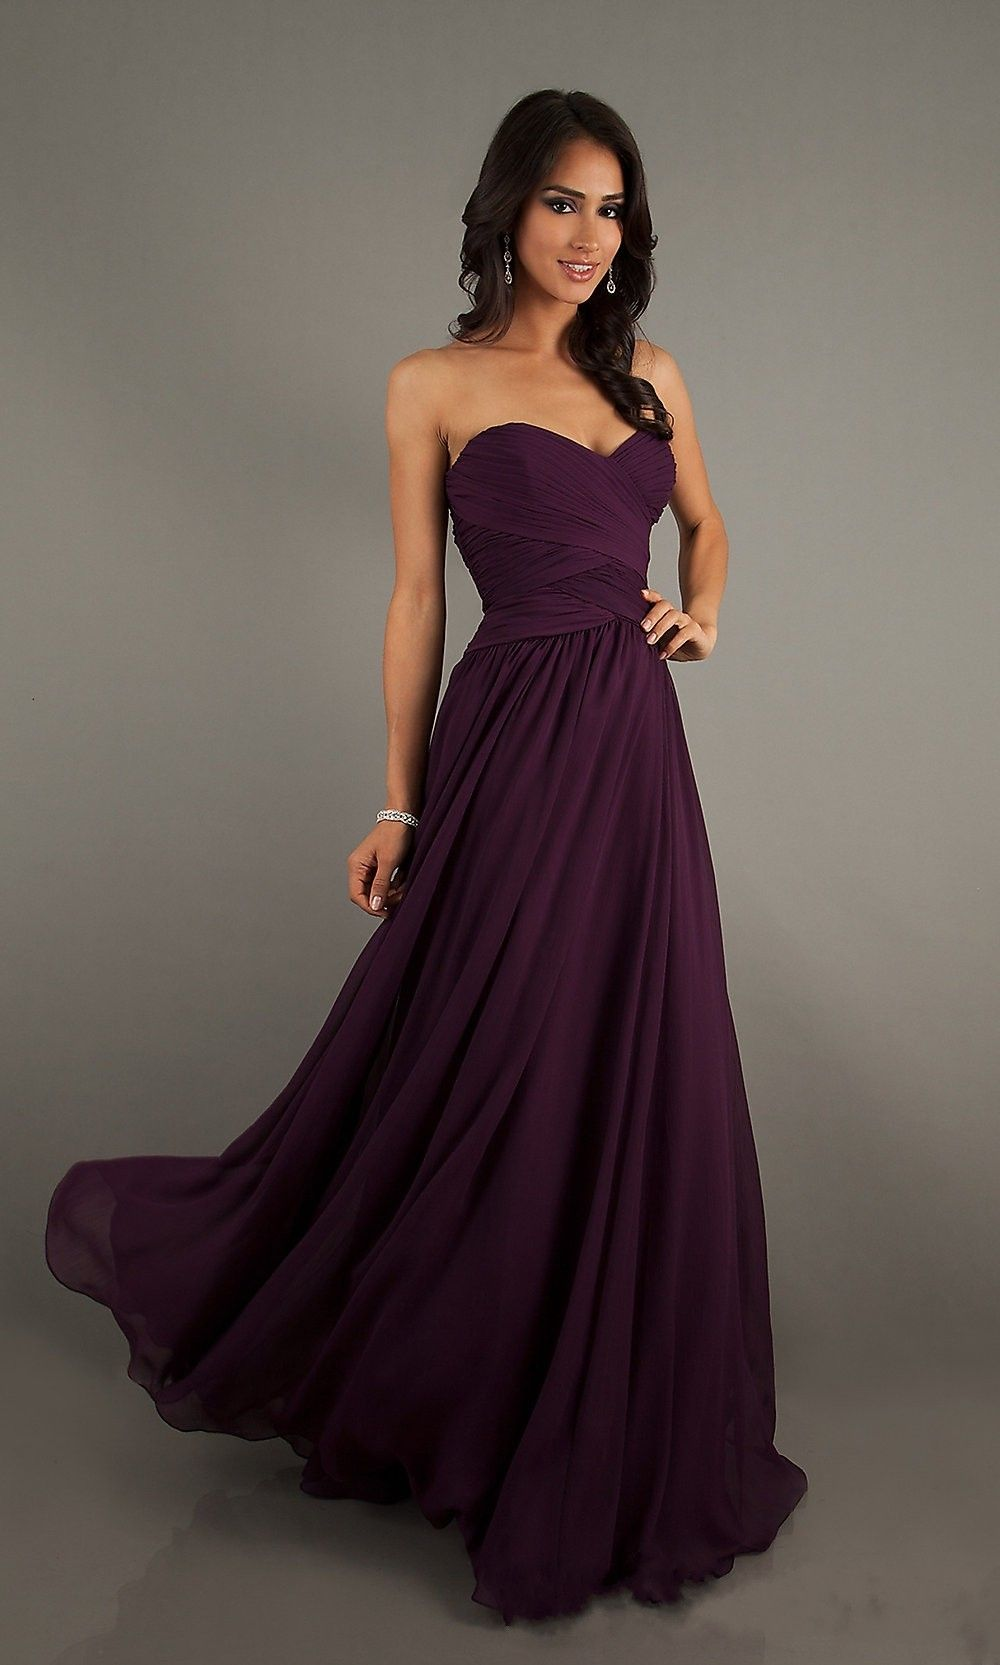 Strapless sweetheart navy blue gowns google search usmc strapless sweetheart navy blue gowns google search usmc stuff pinterest navy blue gown blue gown and navy blue ombrellifo Choice Image